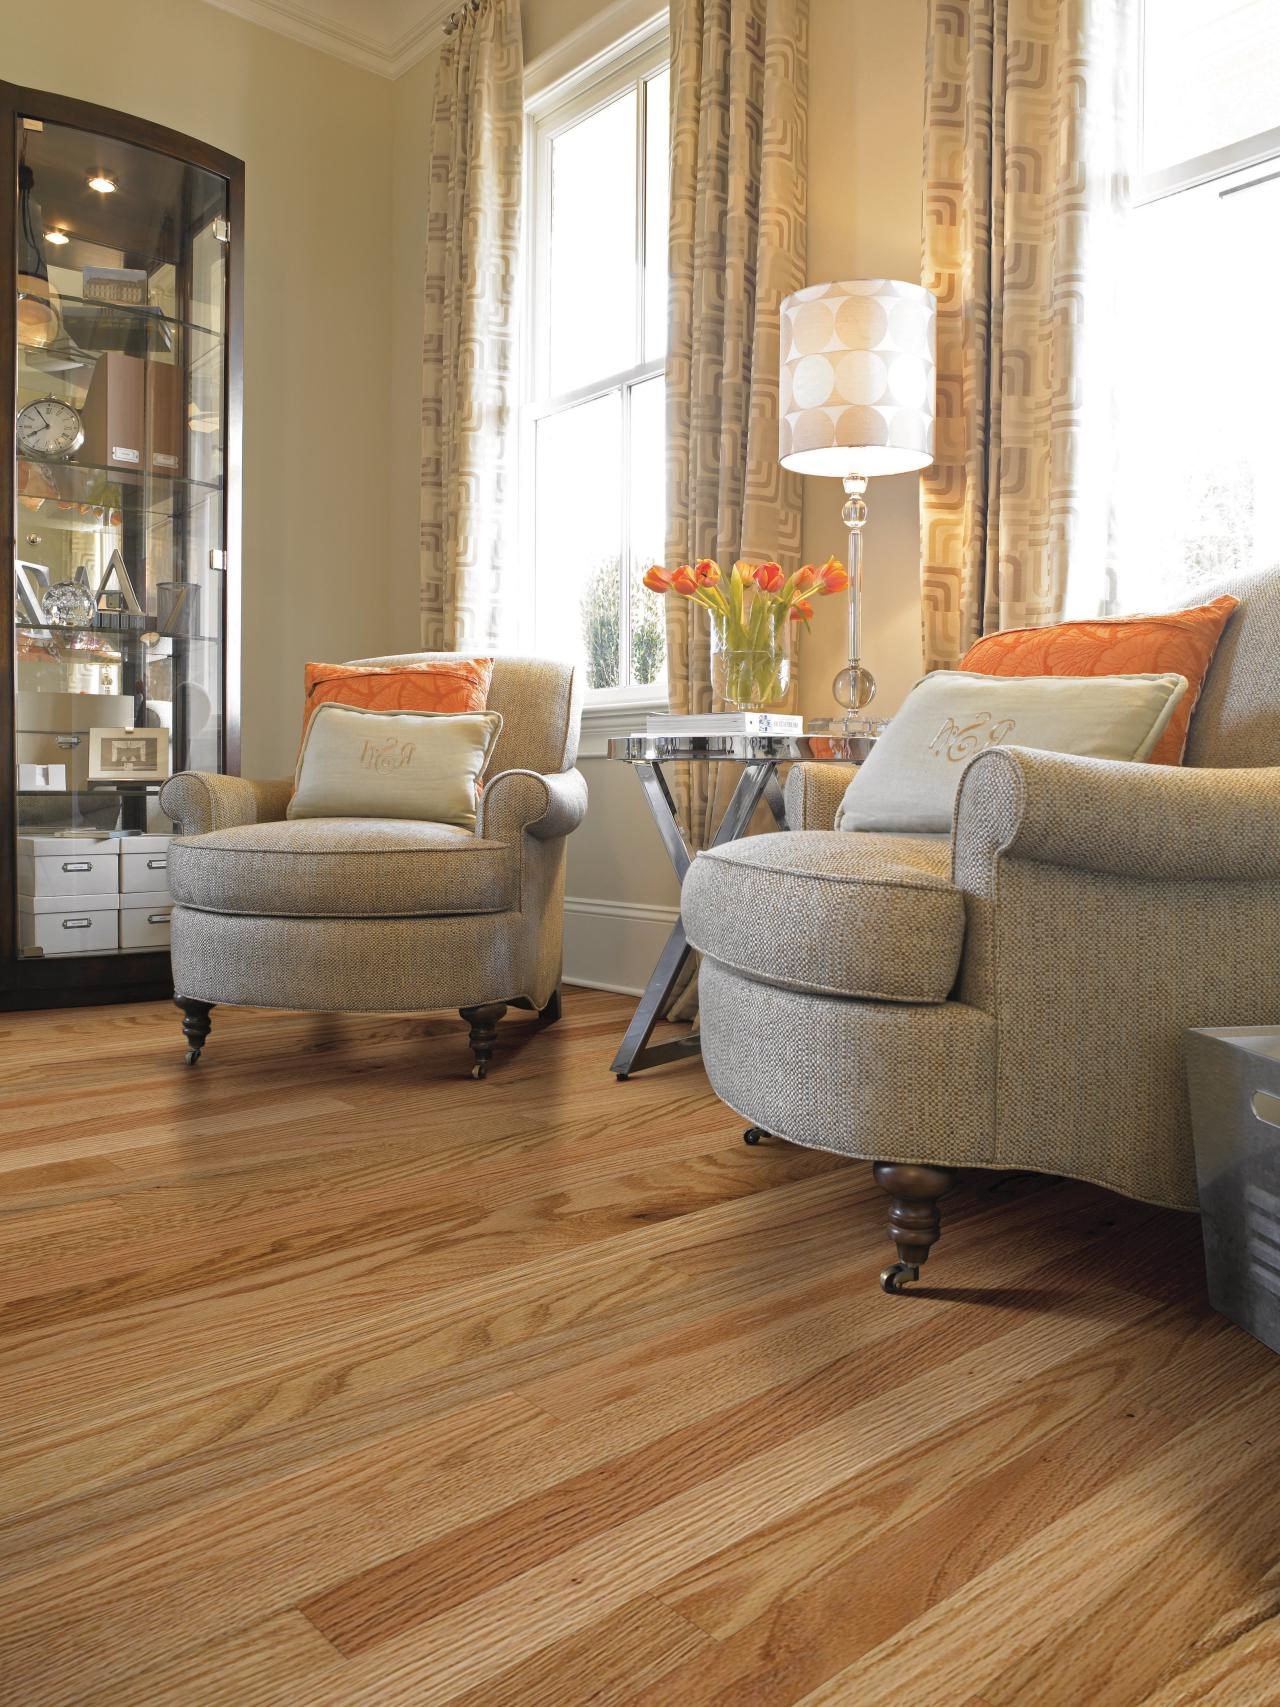 Best Flooring Options For Living Room  Roy Home Design. Shabby Chic Kitchen Ideas. Kitchen Store. Kitchen Aid Coffee Makers. Small Kitchen Table Set. California Pizza Kitchen Raleigh Nc. Hells Kitchen Mpls. Kitchen China Cabinet. Small Roaches In Kitchen